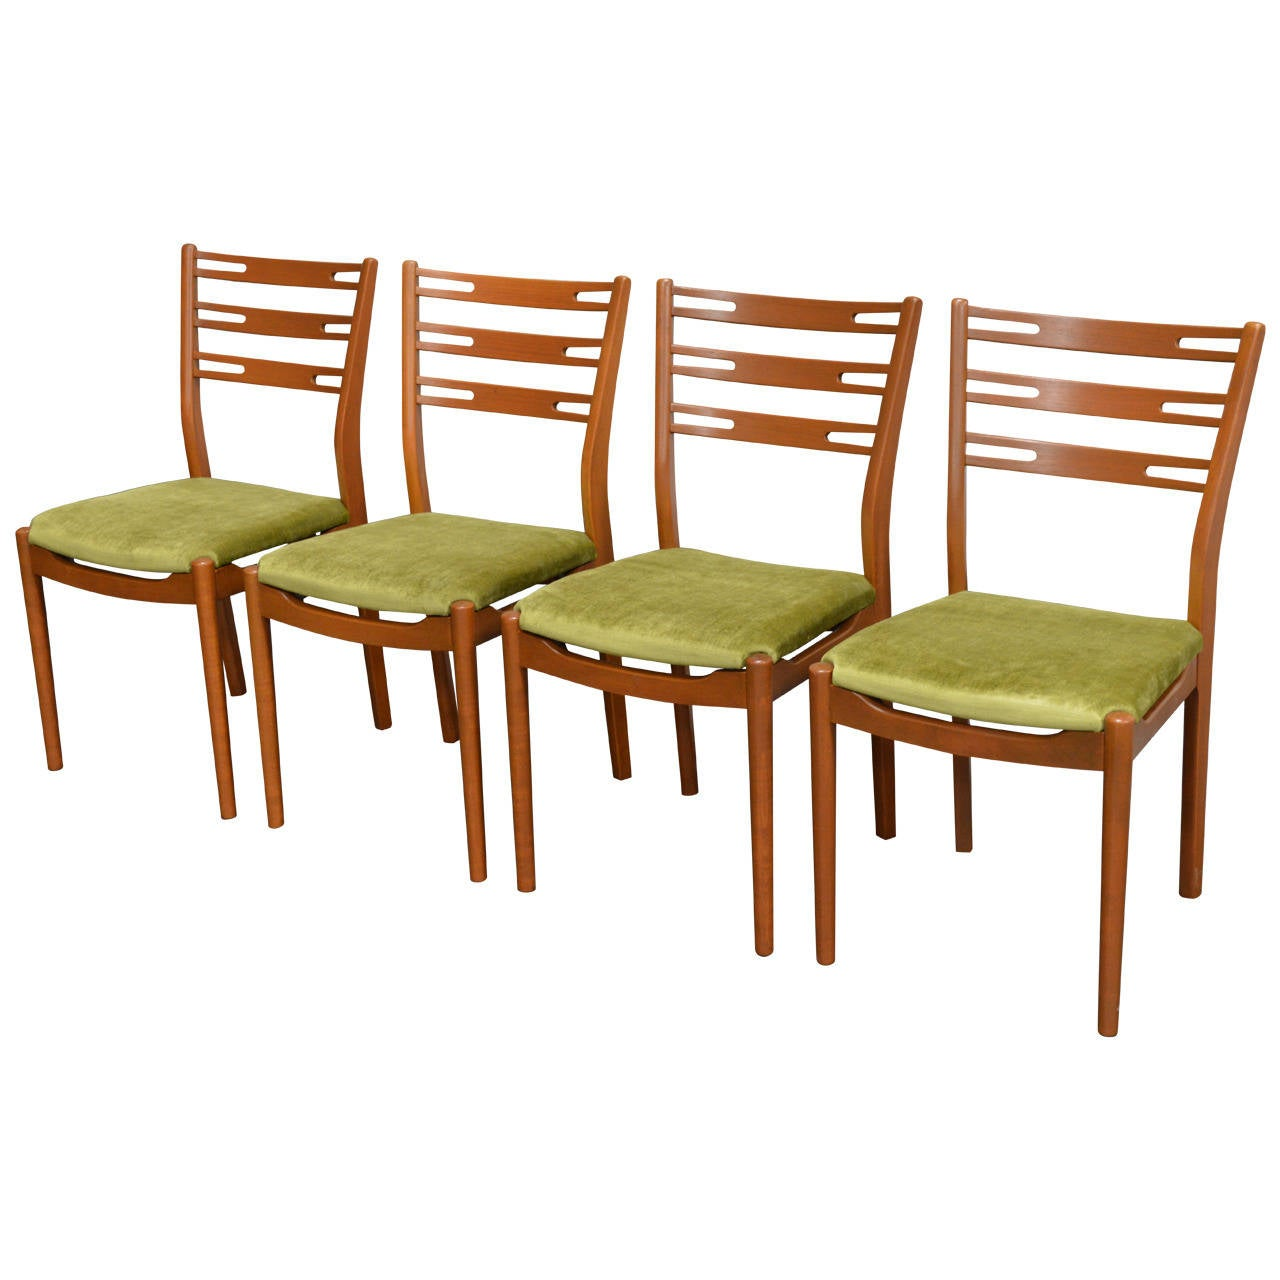 Set of Four Swedish Mid-Century Modern Teak Dining Chairs at 1stdibs